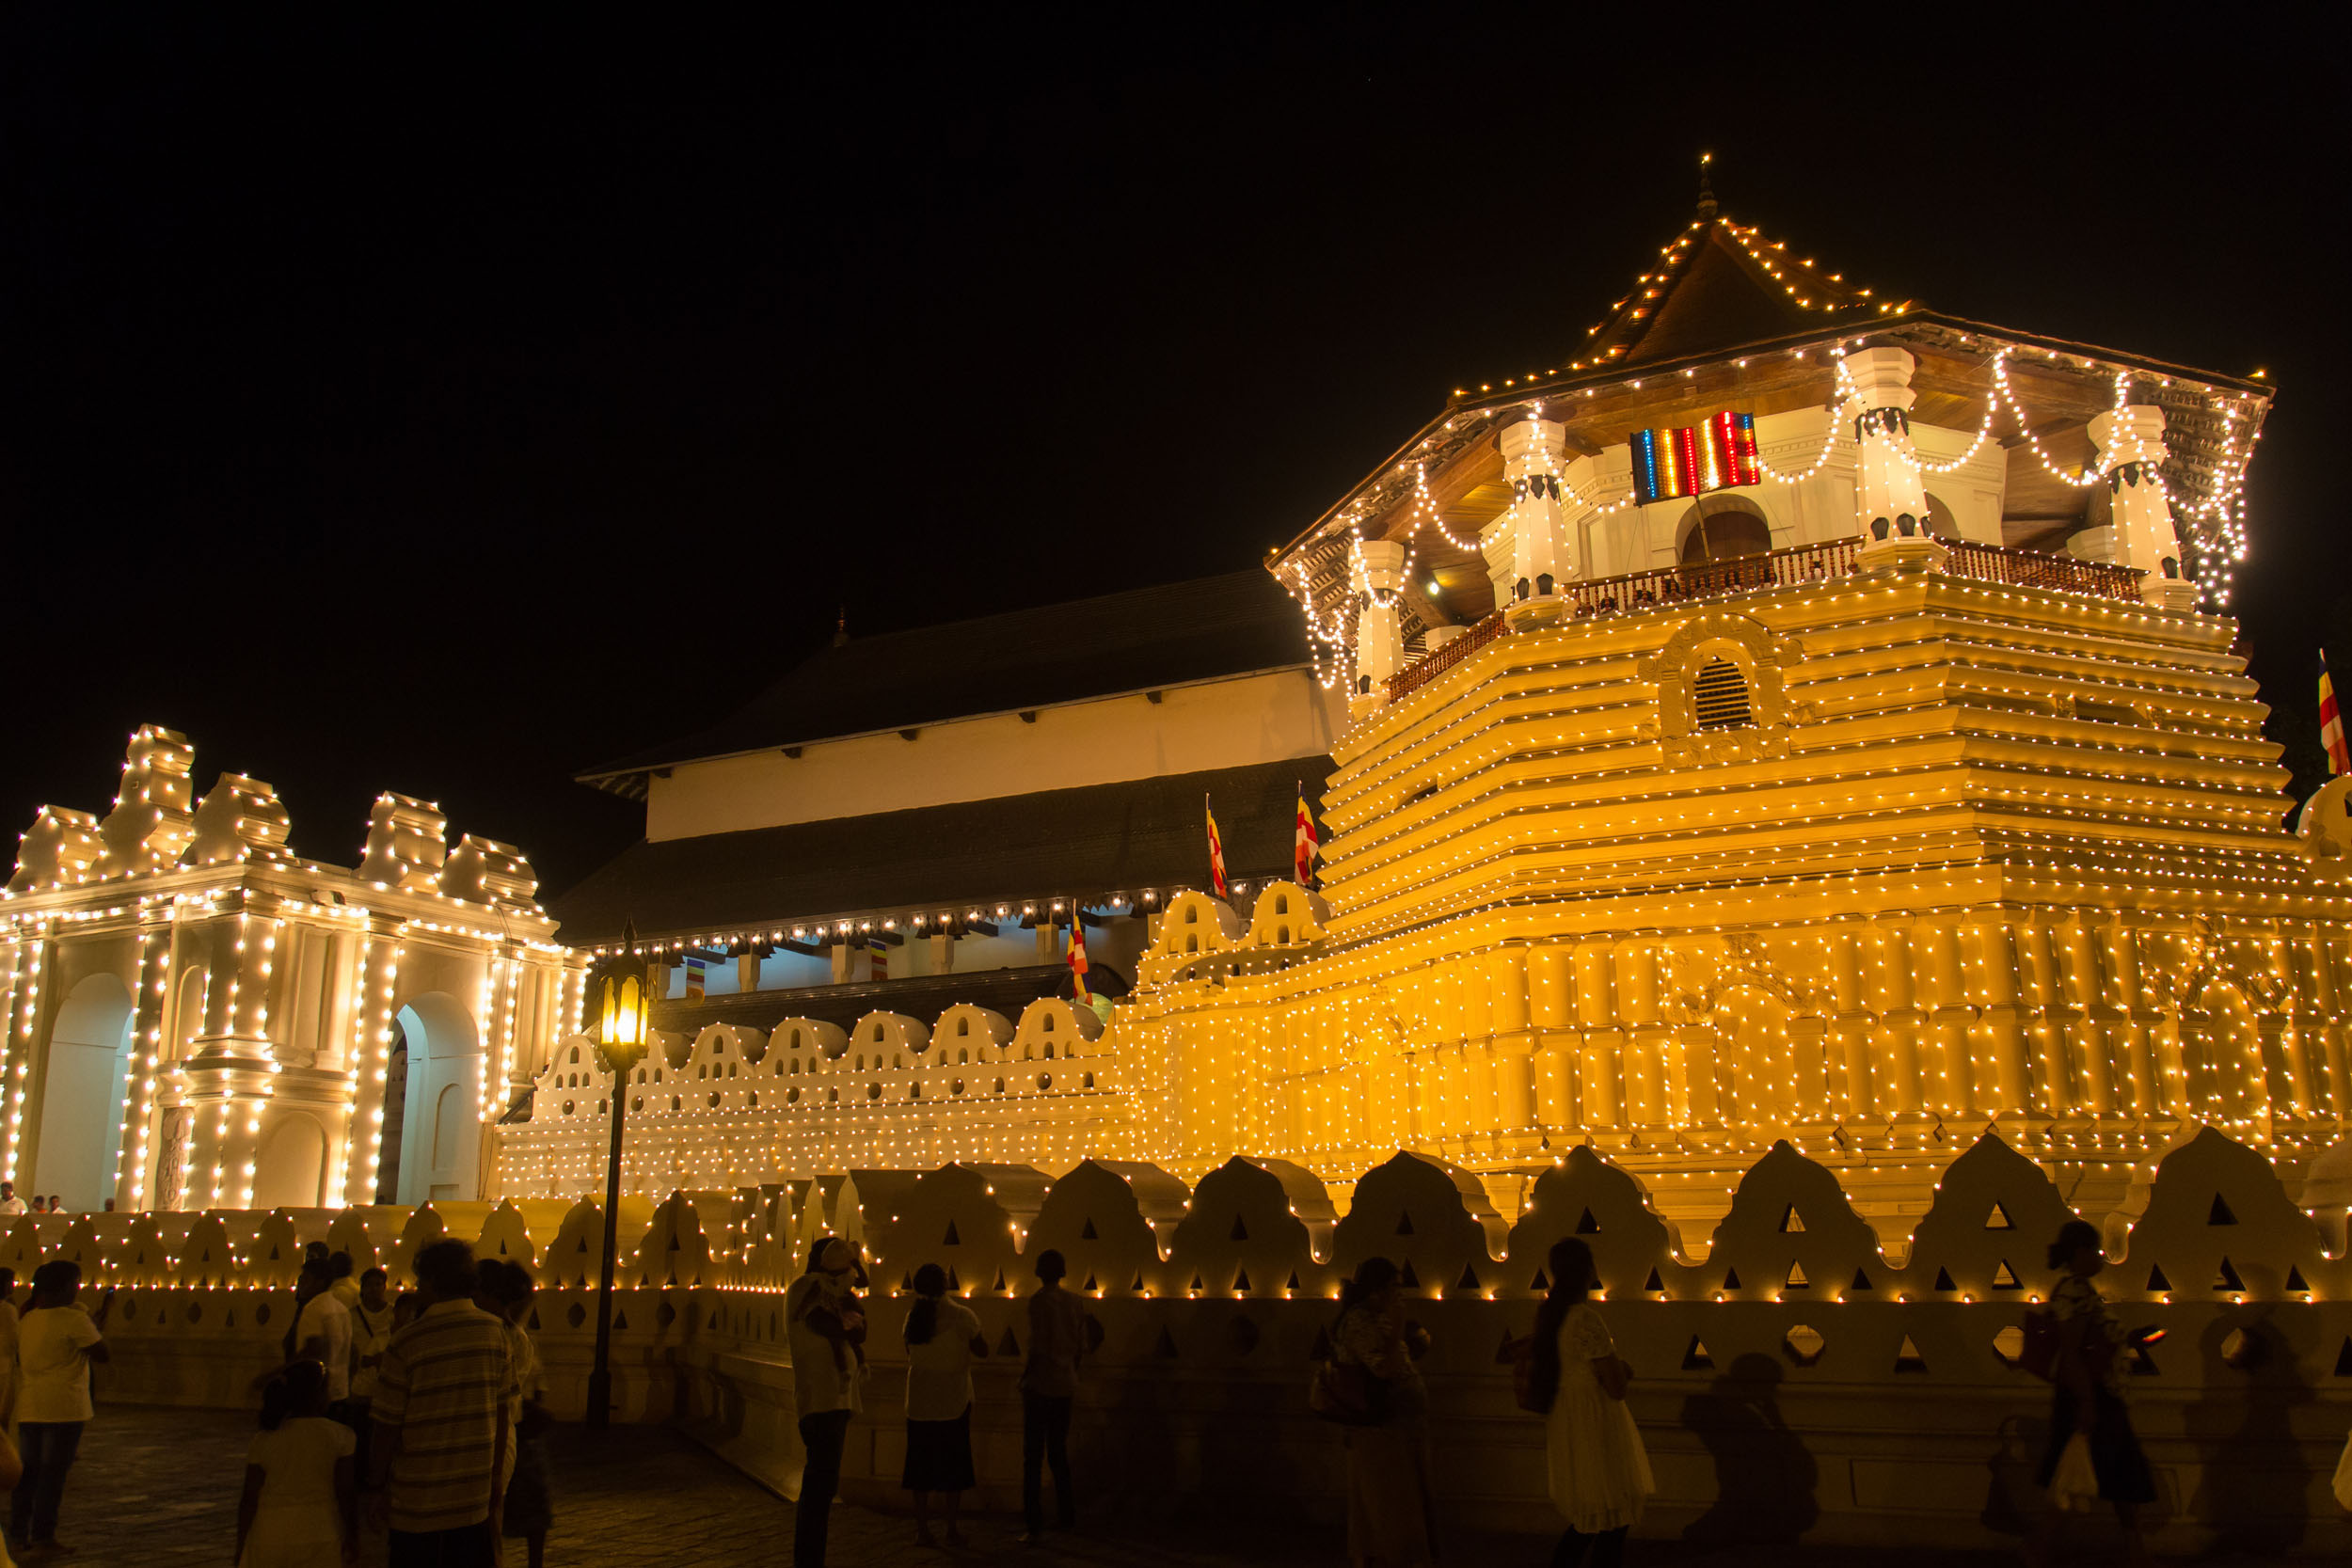 kandy-temple-of-the-tooth-sri-lanka